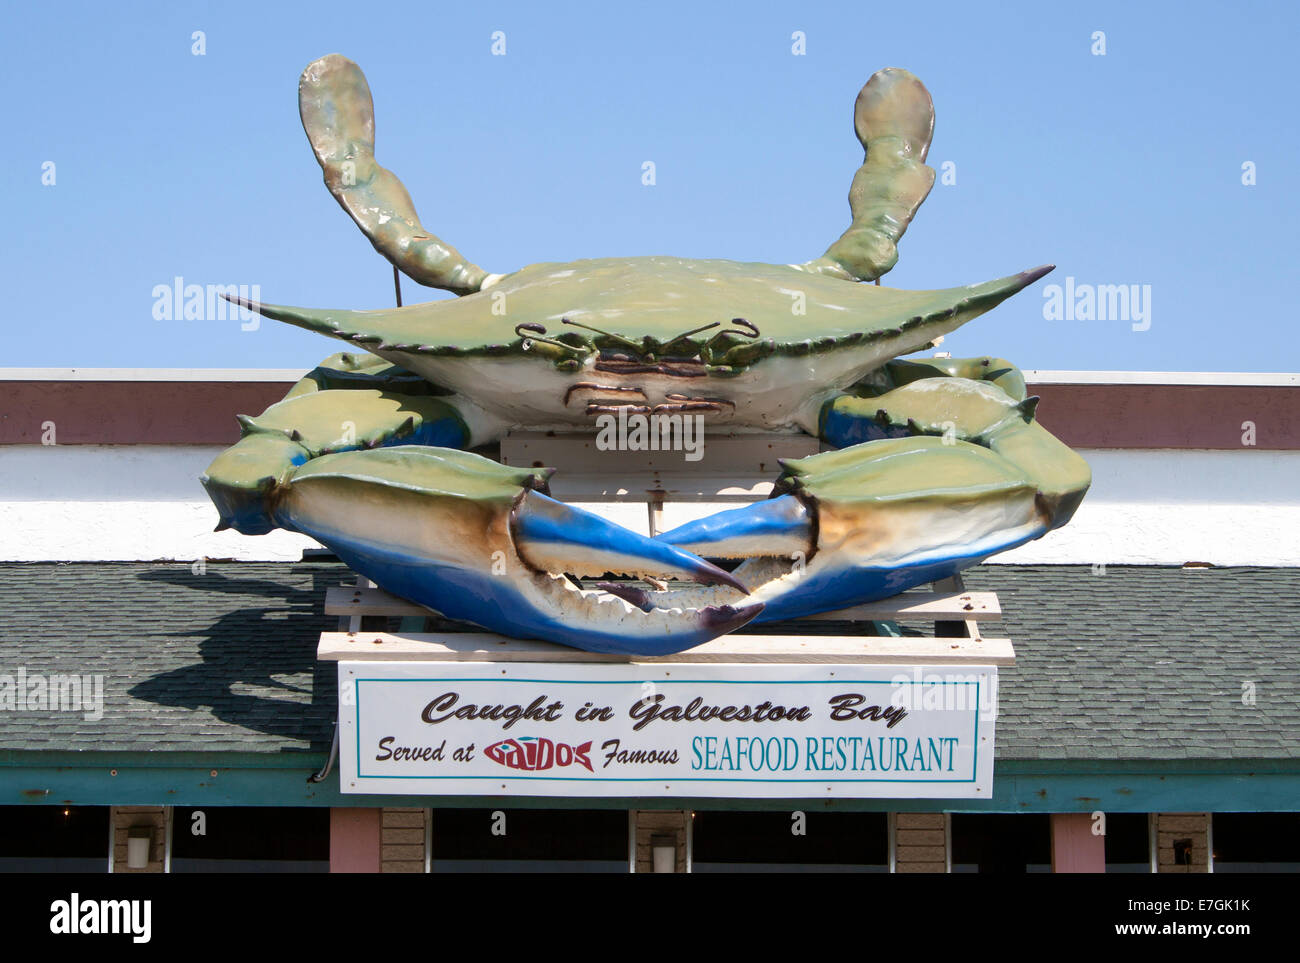 Giant Crab On A Roof At A Seafood Restaurant In Galveston